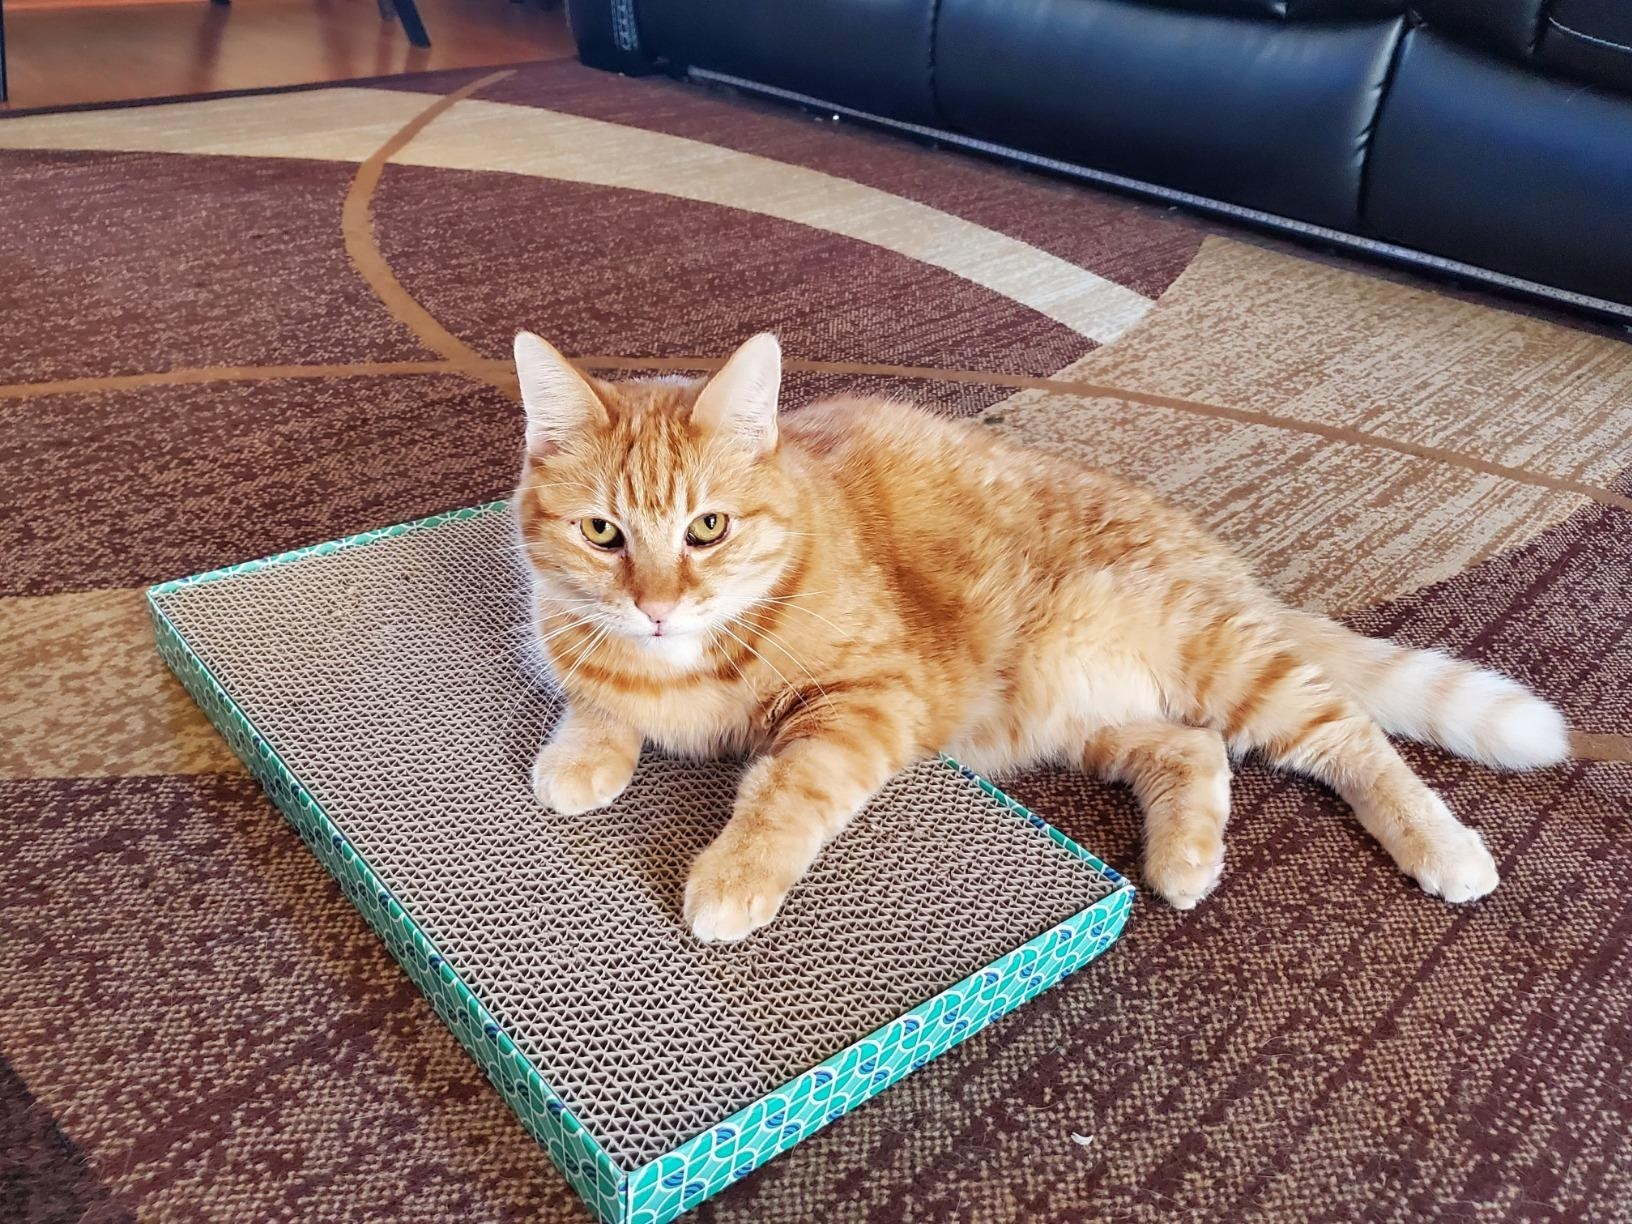 The scratcher with cat lying on top